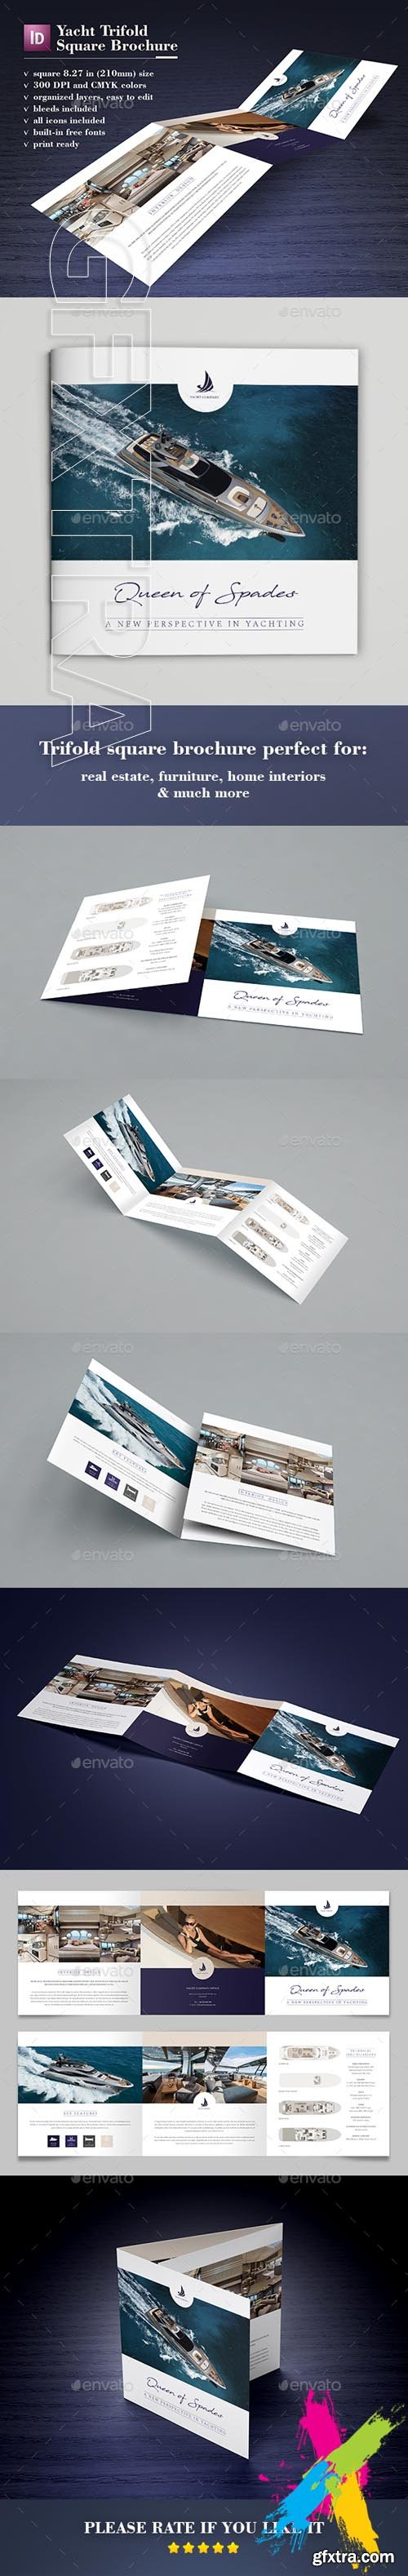 GraphicRiver - Yacht Trifold Square Brochure 20405848